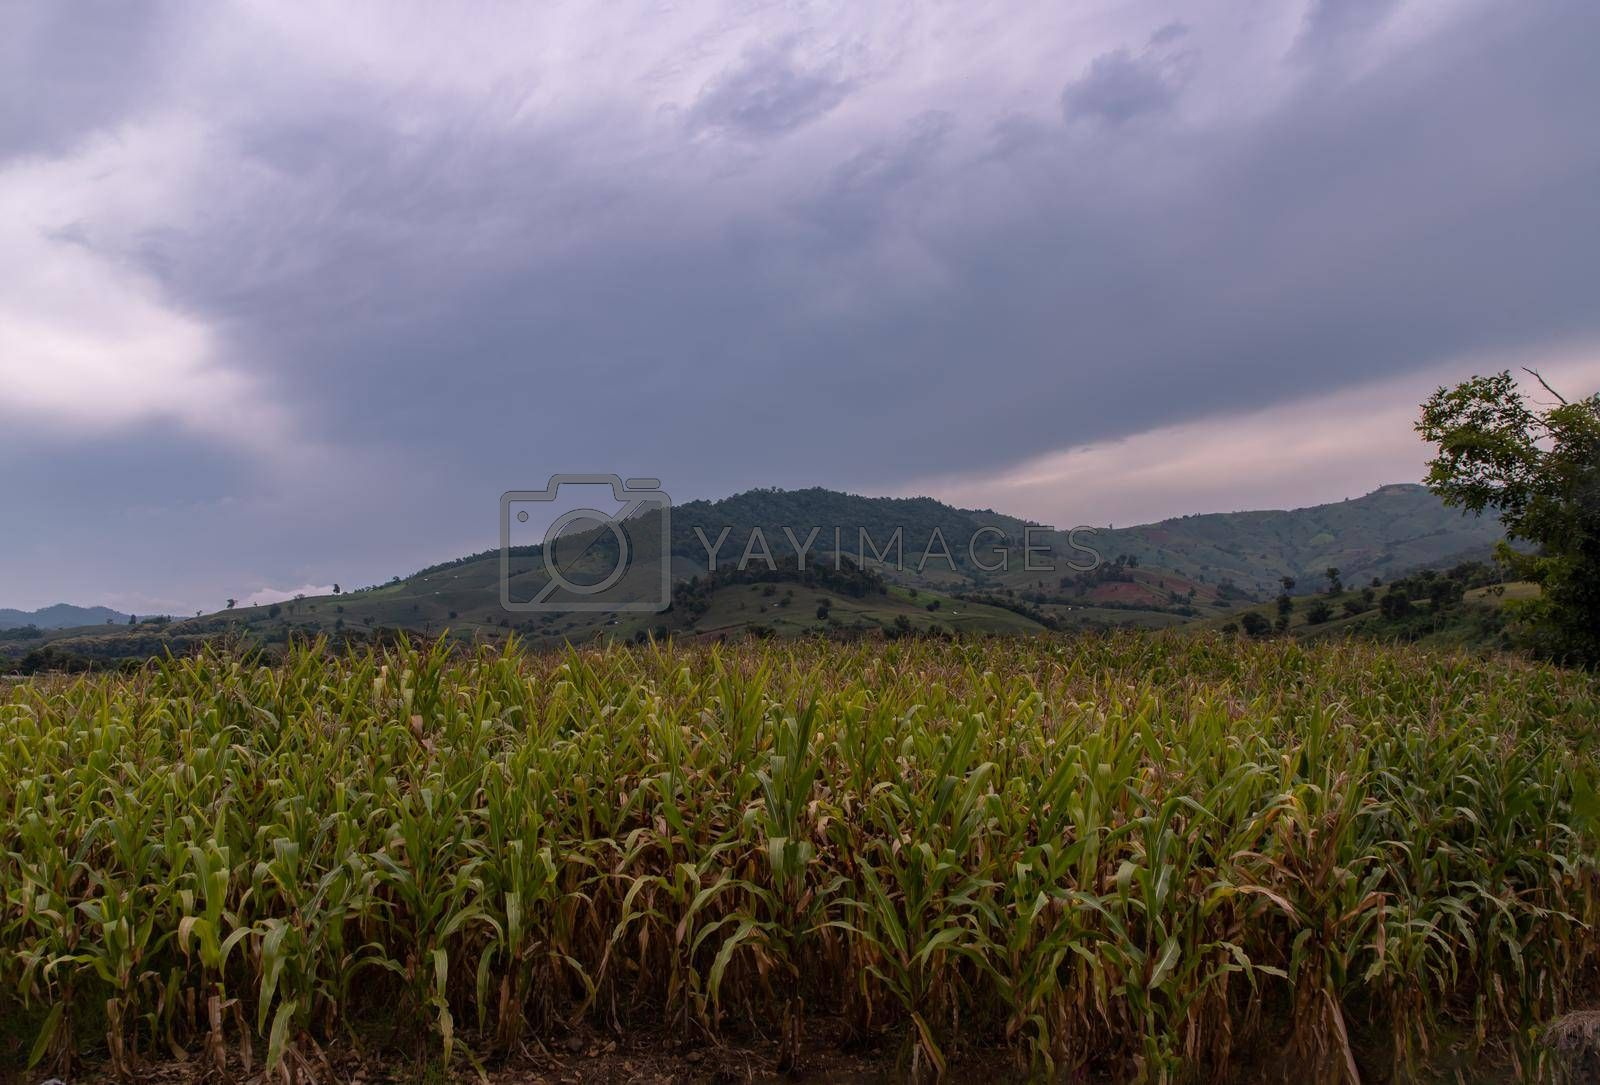 Fields landscape scenery view of Thailand with local villages and behind is forest mountains with beautiful morning sunlight clouds and bright blue sky. No focus, specifically.